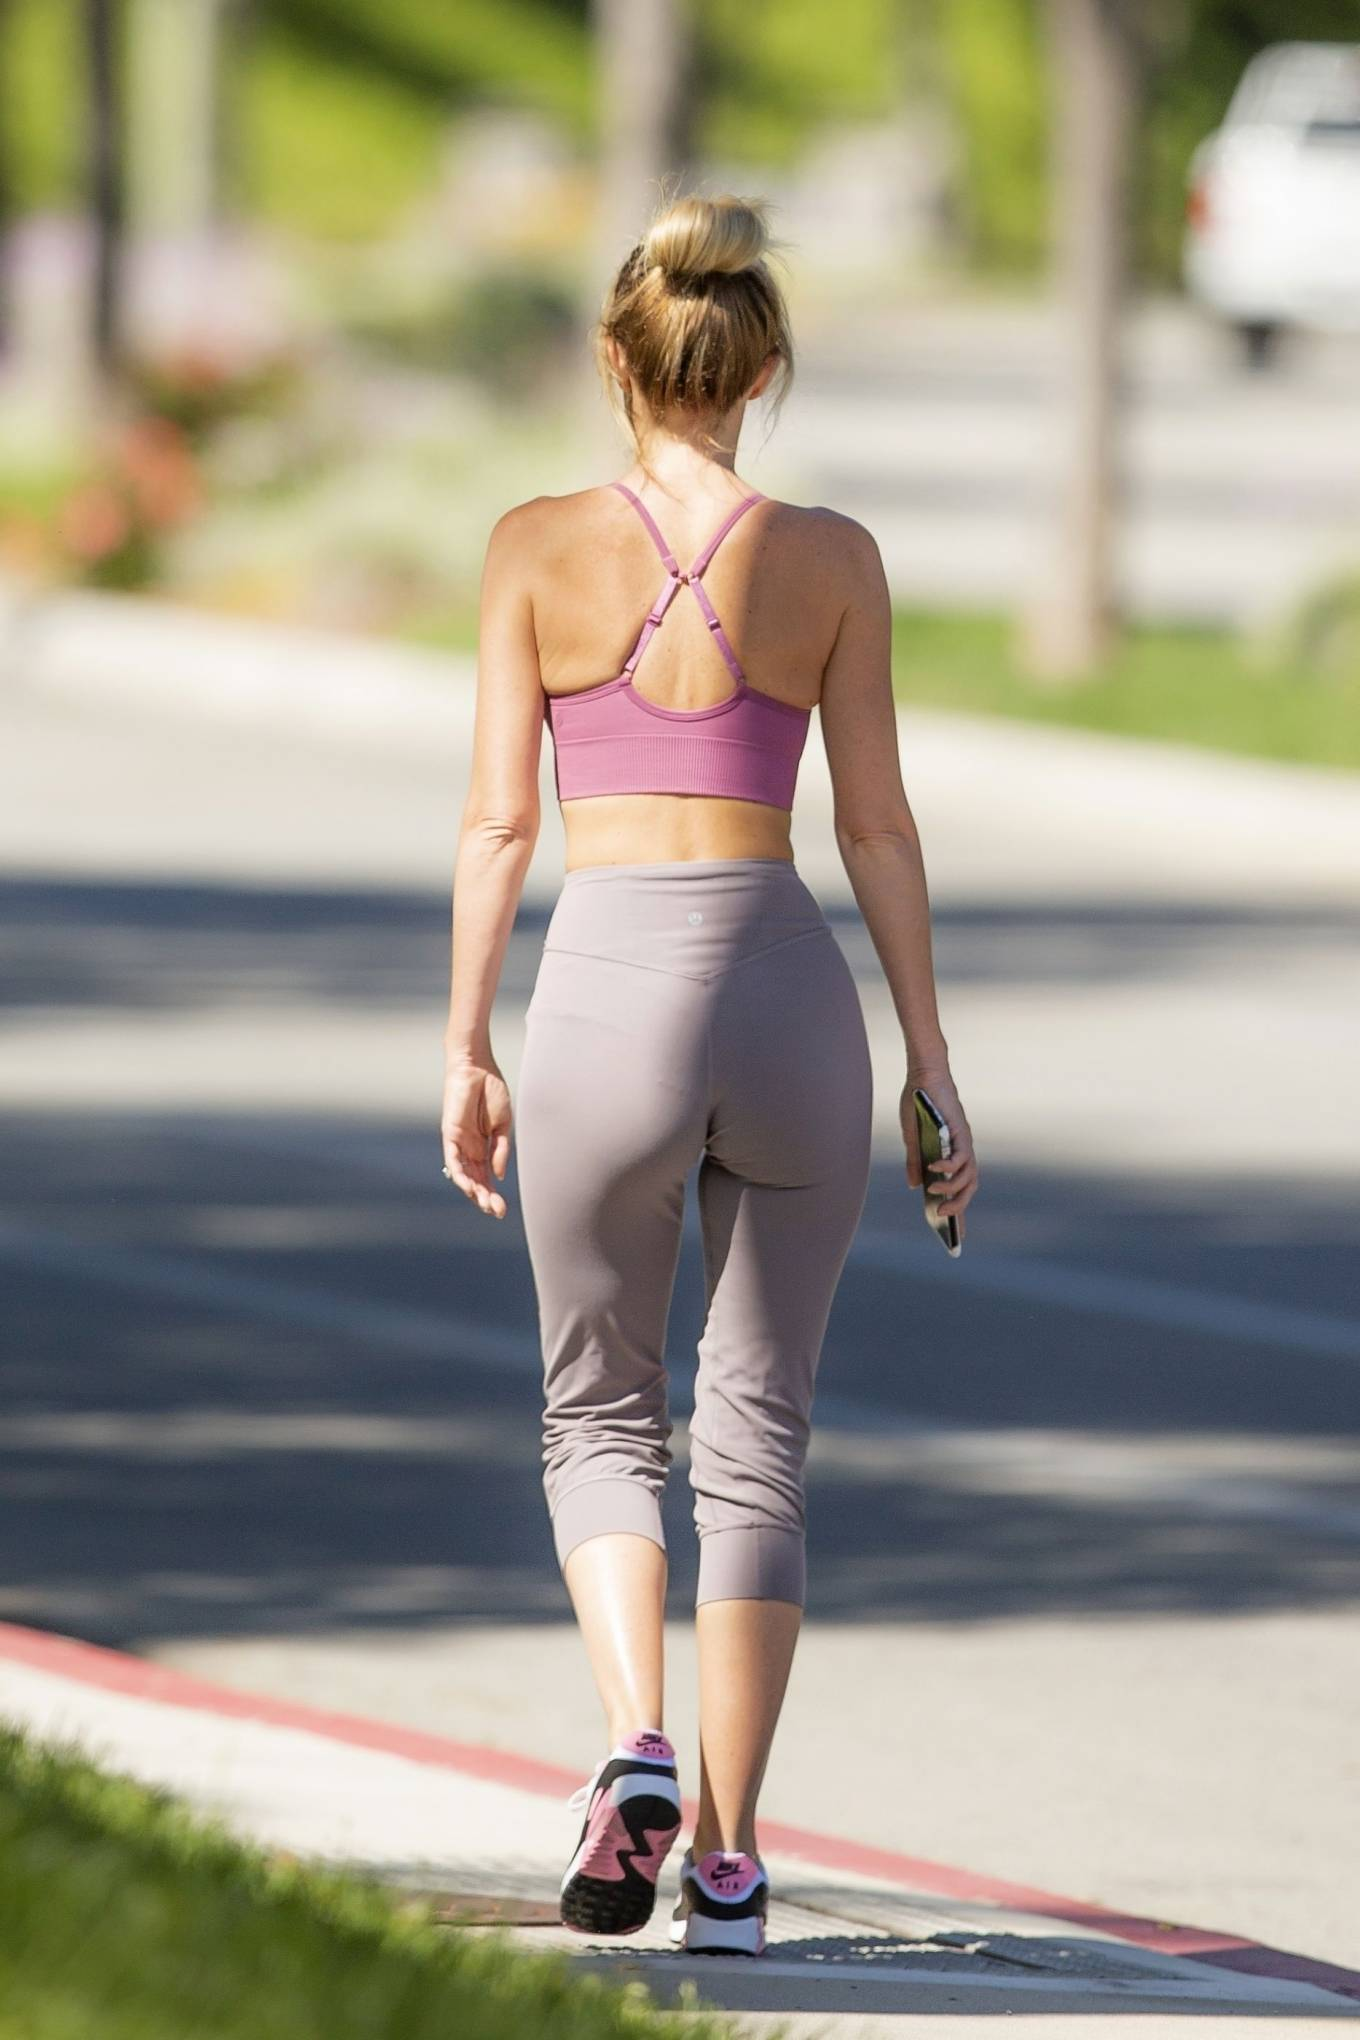 Hayley Roberts Hasselhoff 2020 : Hayley Roberts Hasselhoff in Tights and Sports Bra – Out in Calabasas-20